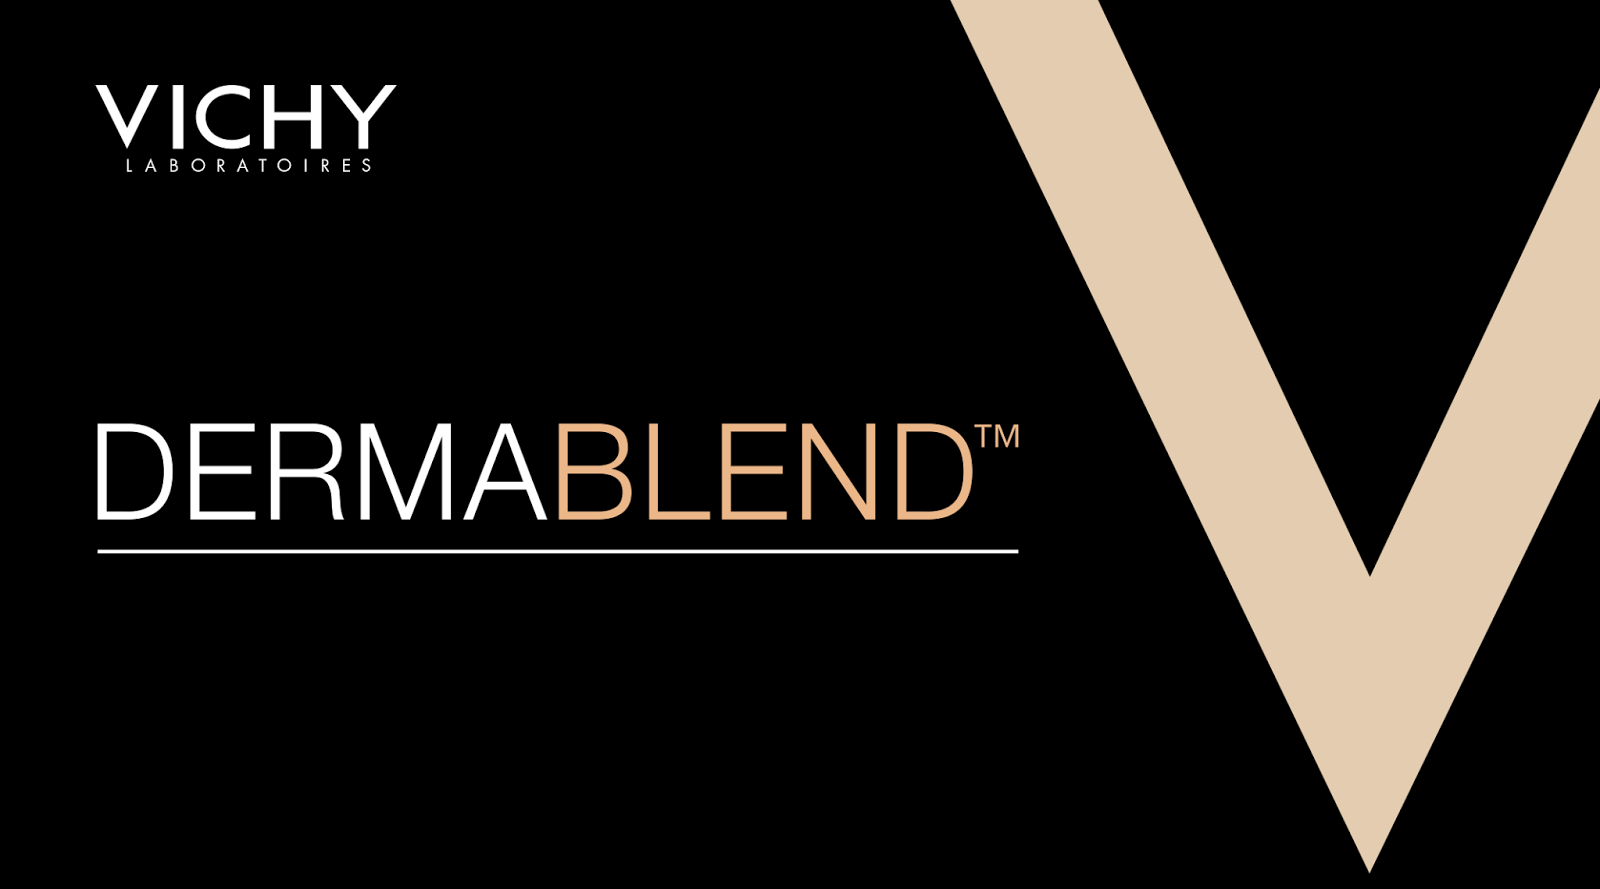 Review vichy dermablend 3d correction foundation every beauty a few weeks ago i was invited to attend the launch of the new dermablend foundation the 3d correction after witnessing with my own eyes geenschuldenfo Gallery